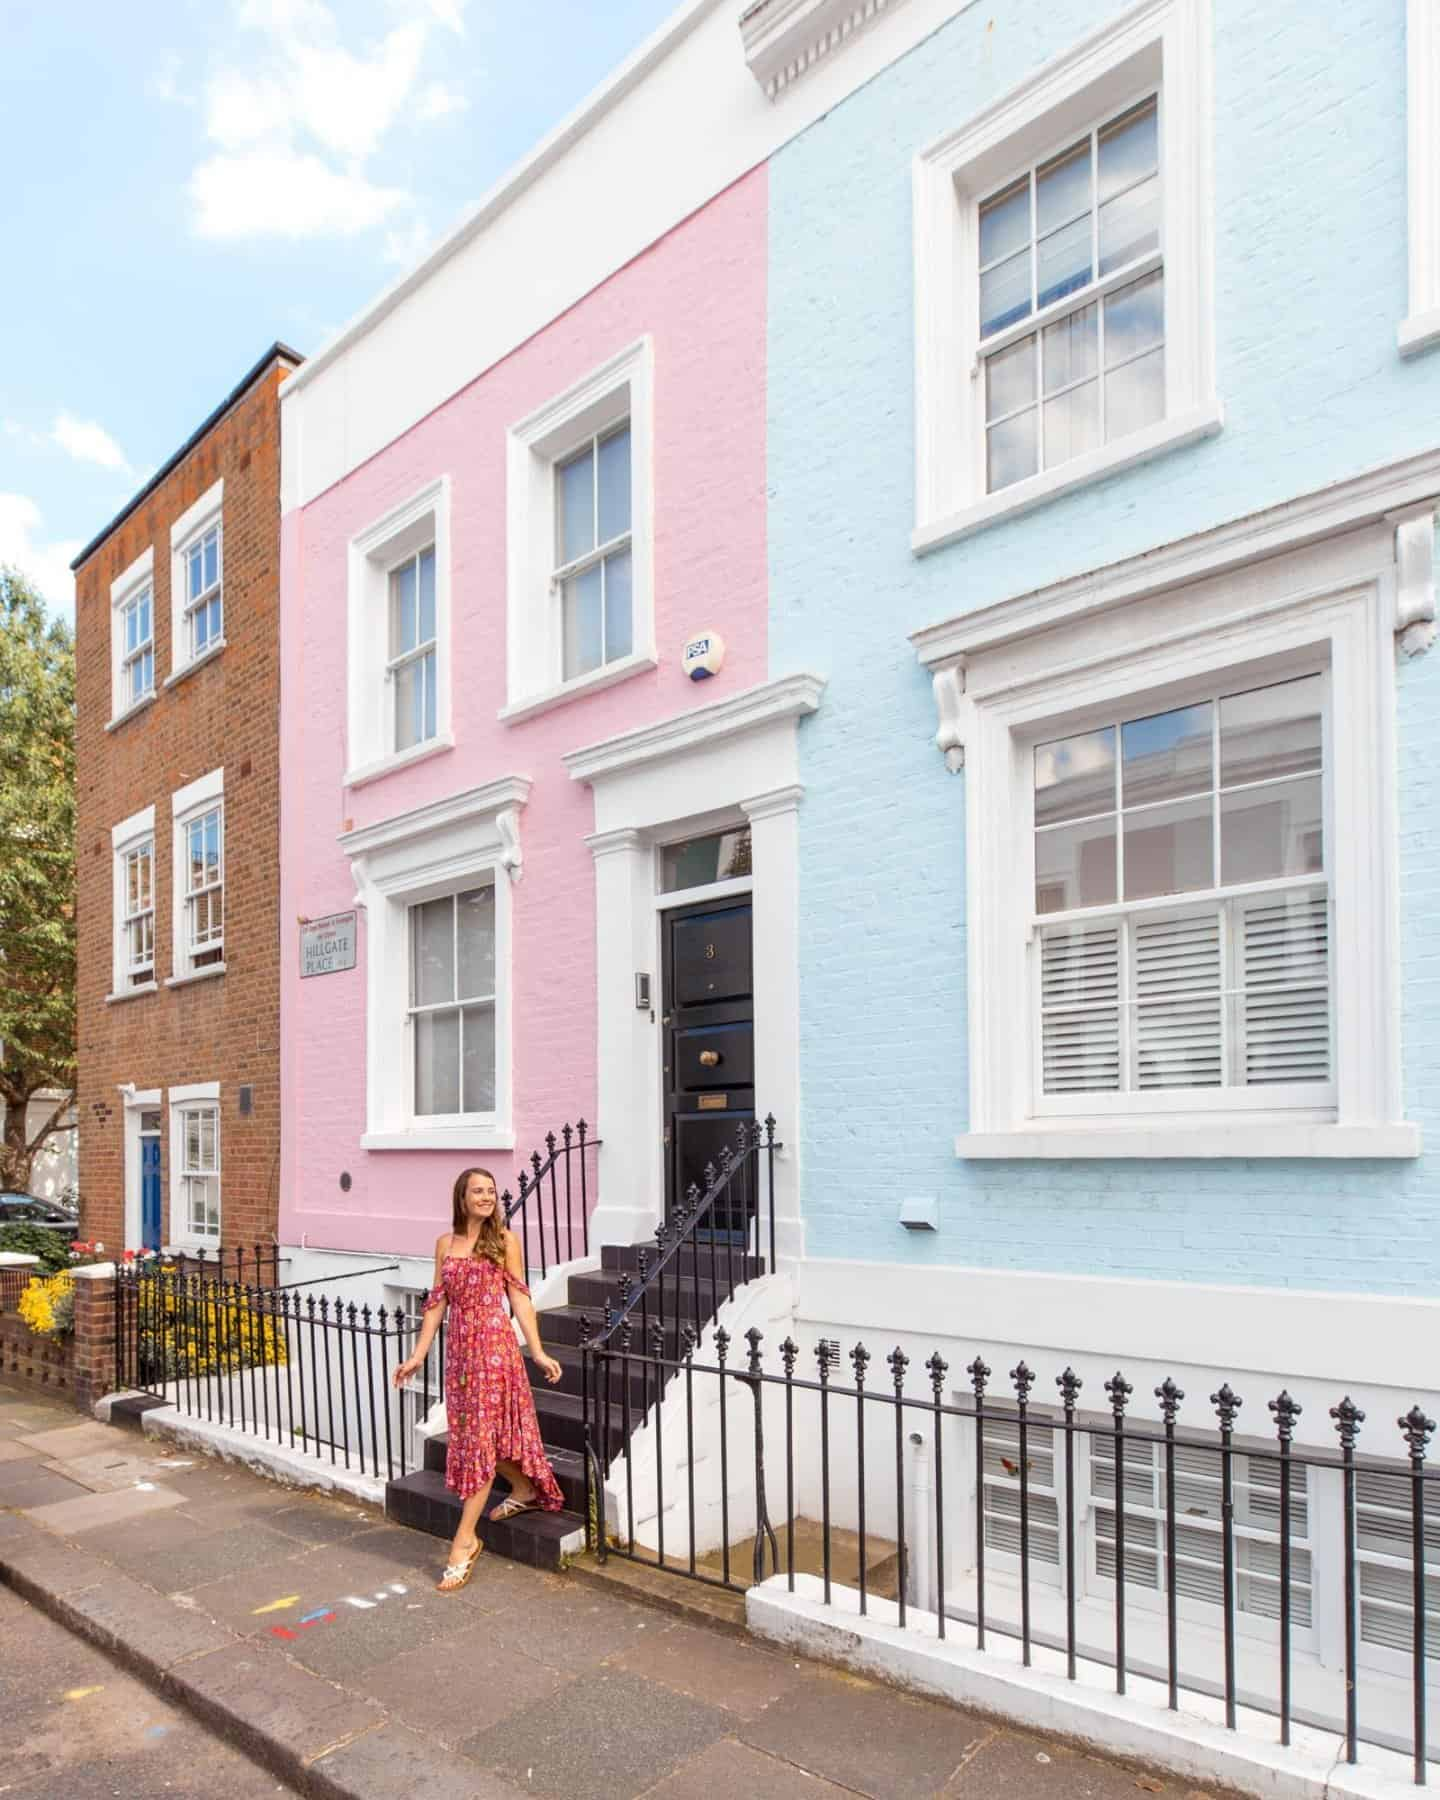 Farmer Street, Notting Hill pink and blue house